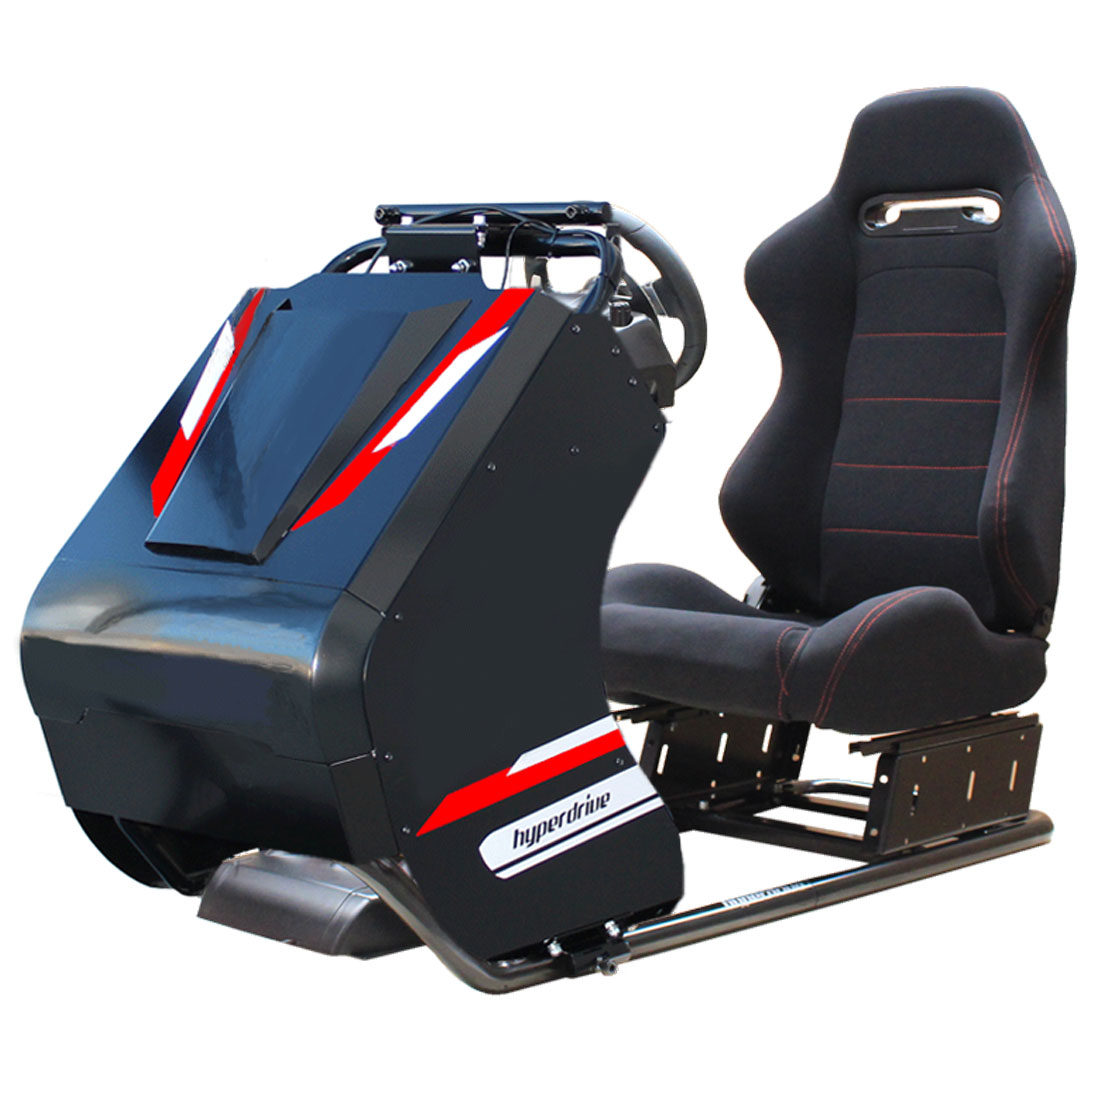 race car simulator cockpit Australia,racing simulator,race simulator,racing driving simulator cockpit,racing seat, race car simulator cockpit,racing simulator frame,racing simulator Australia,sim racing hardware Australia,racing simulator cockpit Australia, ps4 racing simulator,home racing simulator,car racing simulator for sale,race car simulator for sale eBay,v8 supercar simulator for sale,